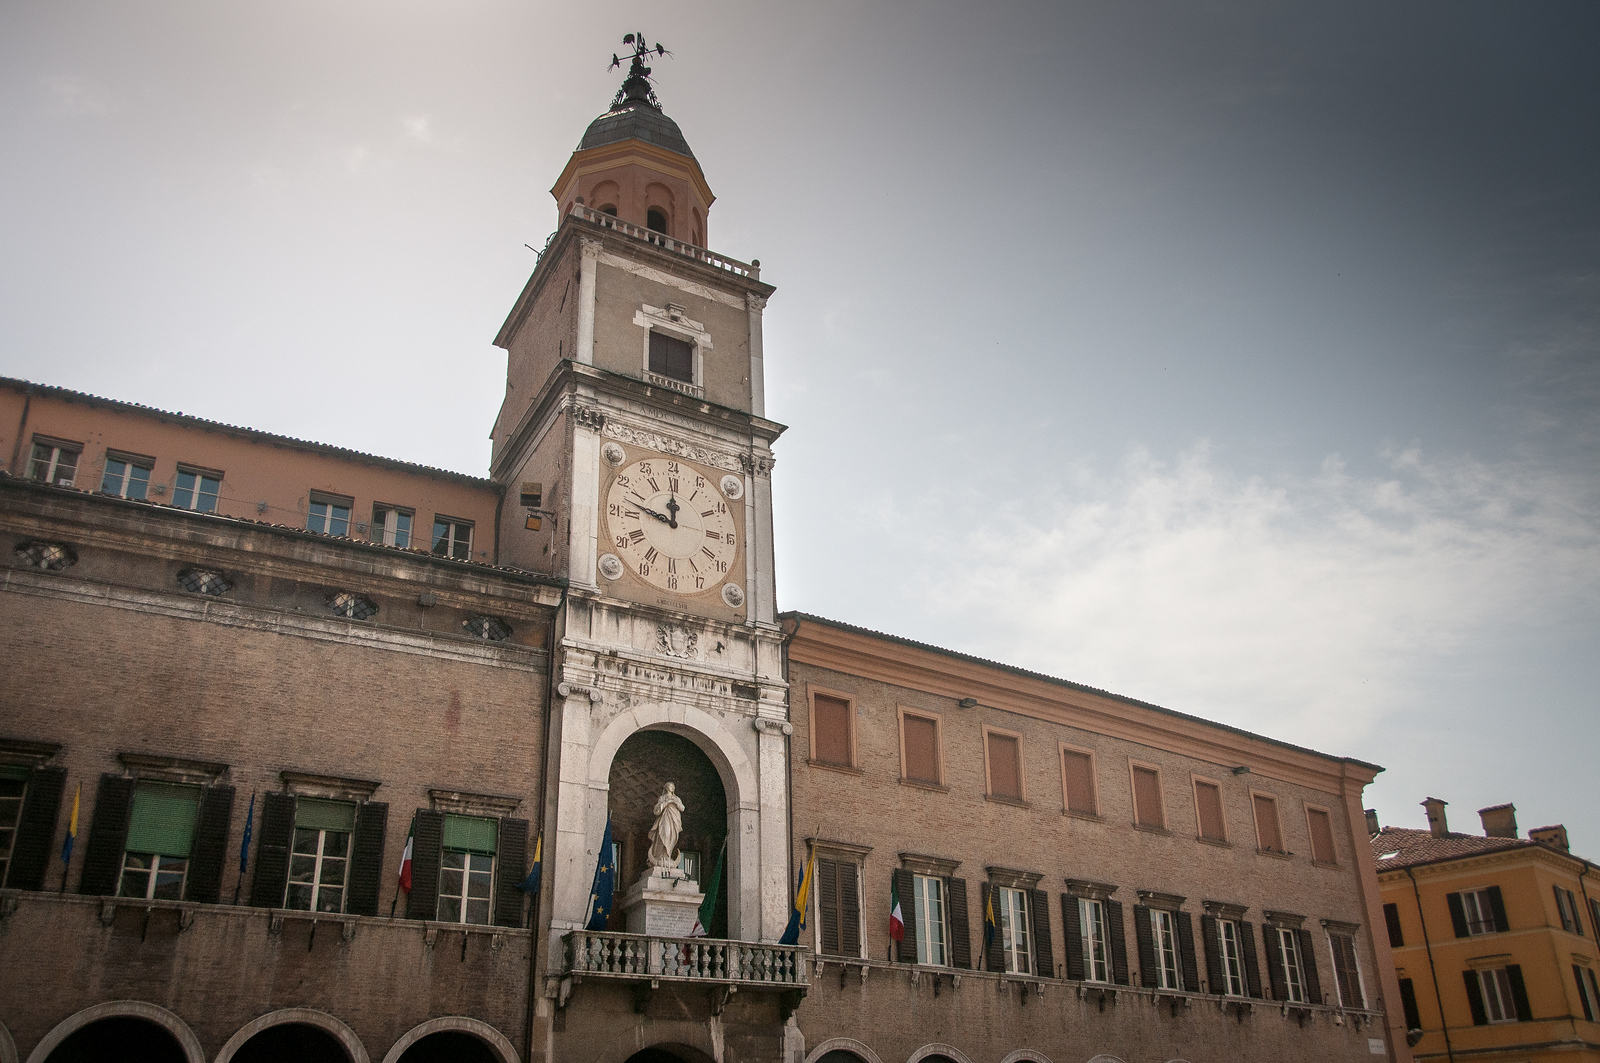 Cathedral, Torre Civica and Piazza Grande, Modena UNESCO World Heritage Site